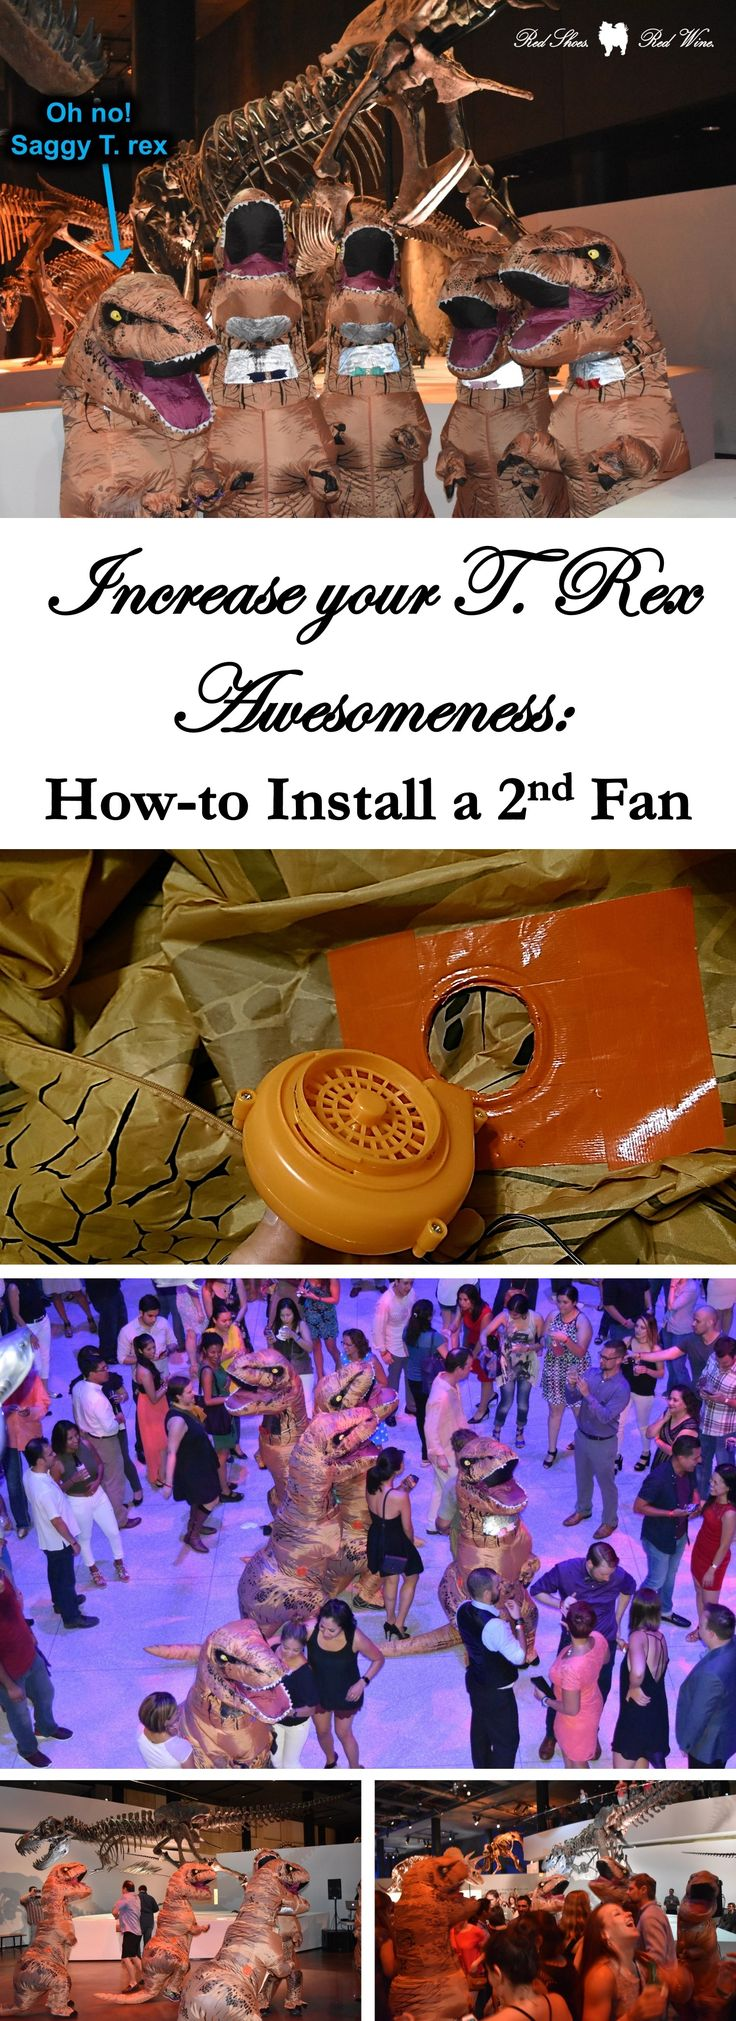 Increase your T. Rex Awesomeness: How to Install a 2nd Fan (Amazon Battery Life Cocktail Party Comicpalooza Cosplay Dancing Dancing Dinosaurs Deflate Deflation Dino Suit Dinosaur Diy Duct Tape Ebay Etiquette Fan Hmns Houston Houston Museum Natural Science Inflatable Inflate Inflation Inner Kid Install Mixers & Elixers Mixers & Elixirs Party Party Crashers Party With The Dinosaurs Selfie Shenanigans Squad Goals T Rex T Rex Costume T Rex Suit Texas Turbo Tyrannosaurus Rex Upgrade Wine)